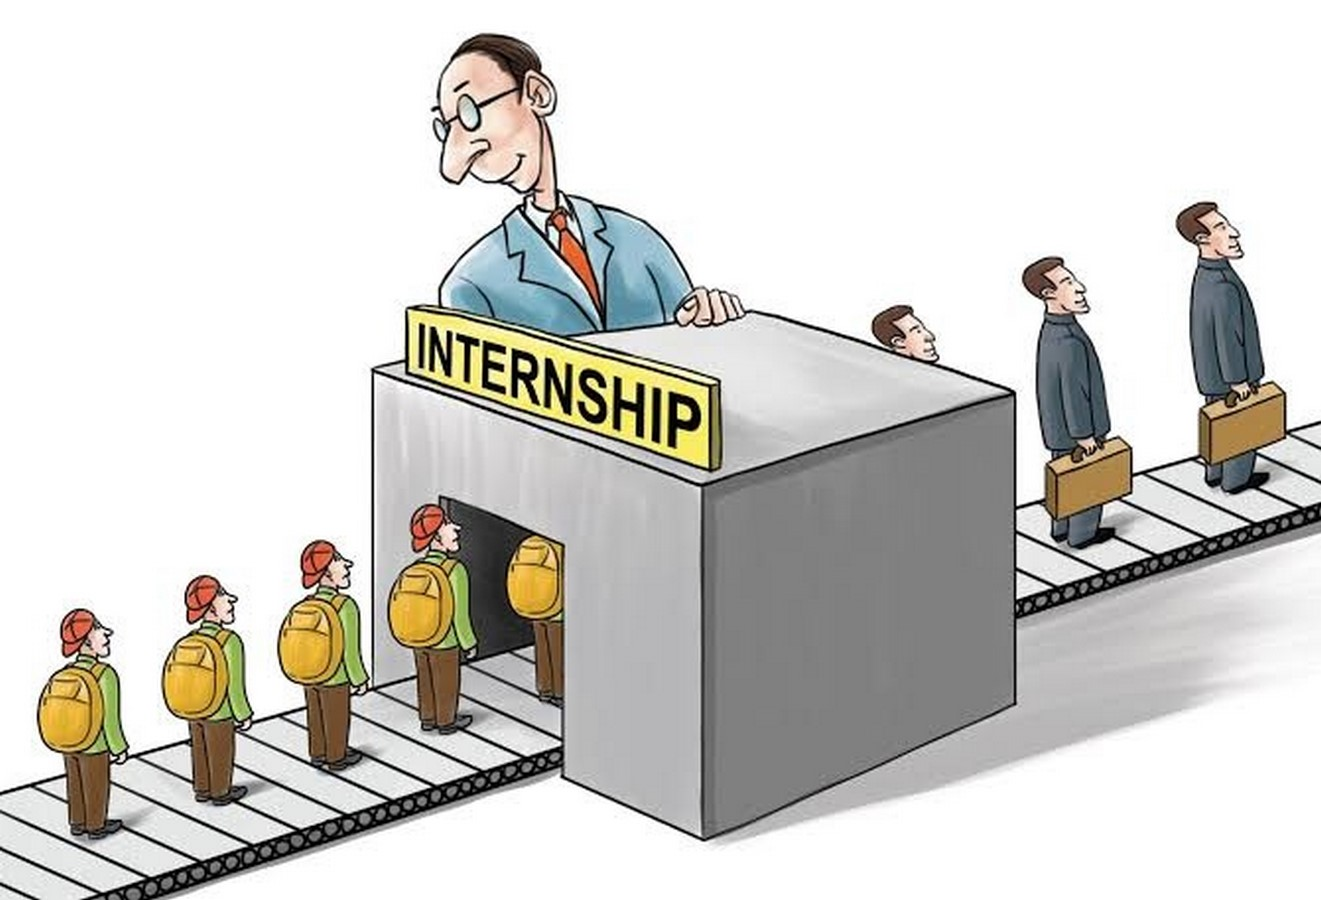 How to select a right firm for internship? Sheet3